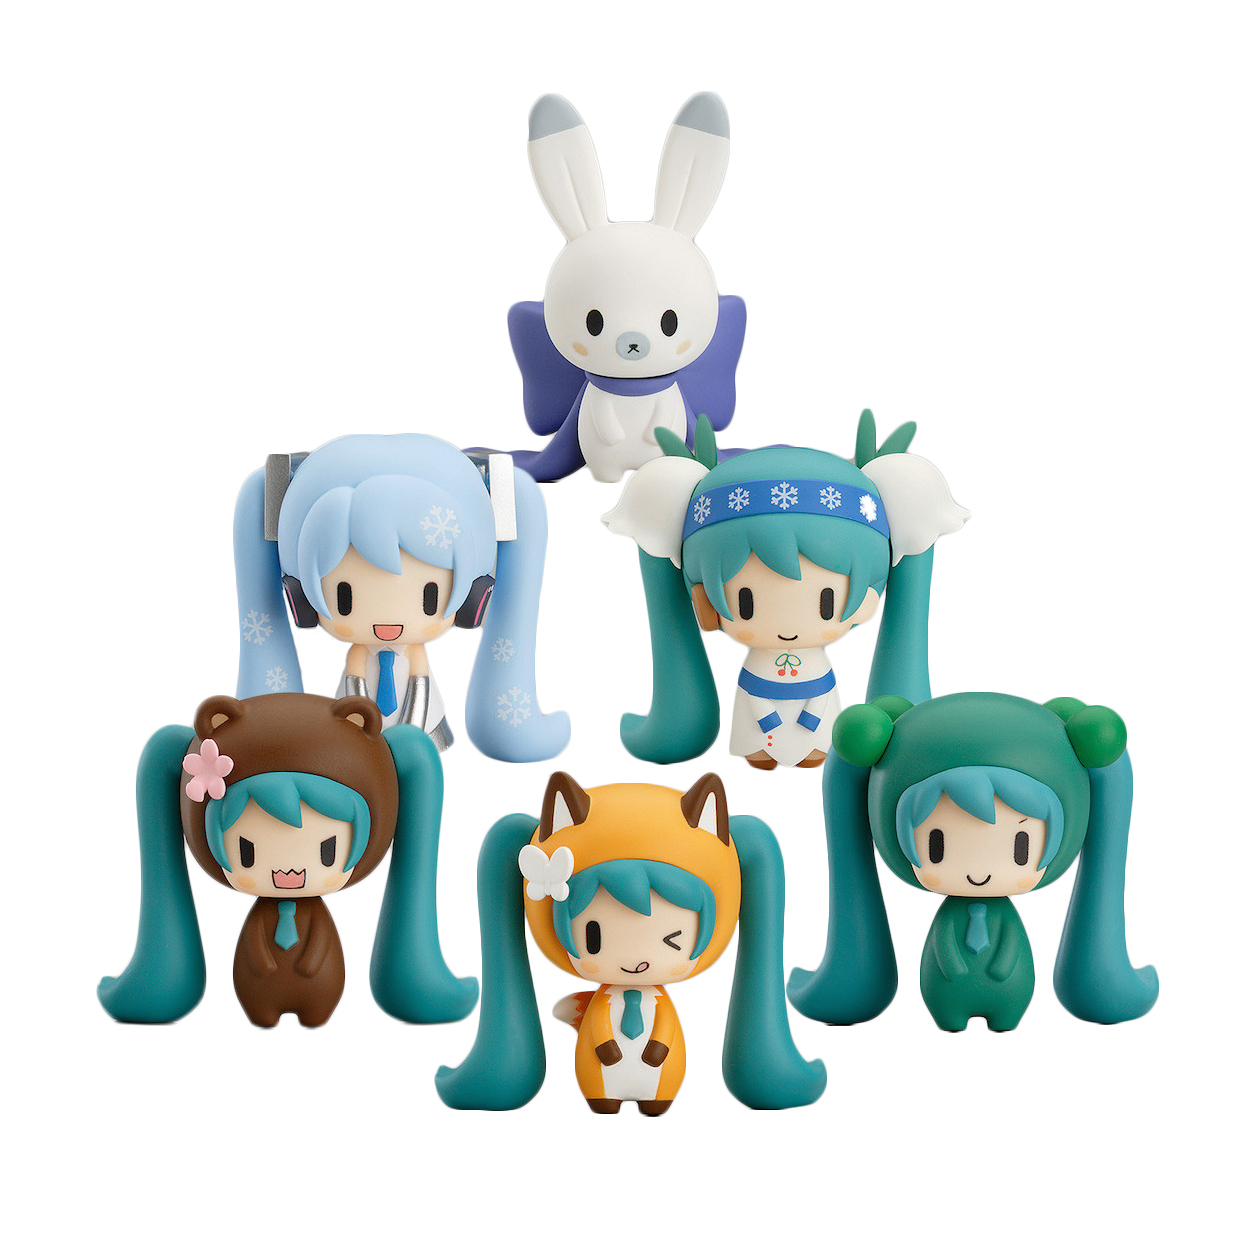 Chanycore Janpan Vocaloid Hatsune Miku Anime Figure 6pcs/set Cute Snow Miku 2015 PVC Figure Collection Model Doll Toy 5cm image